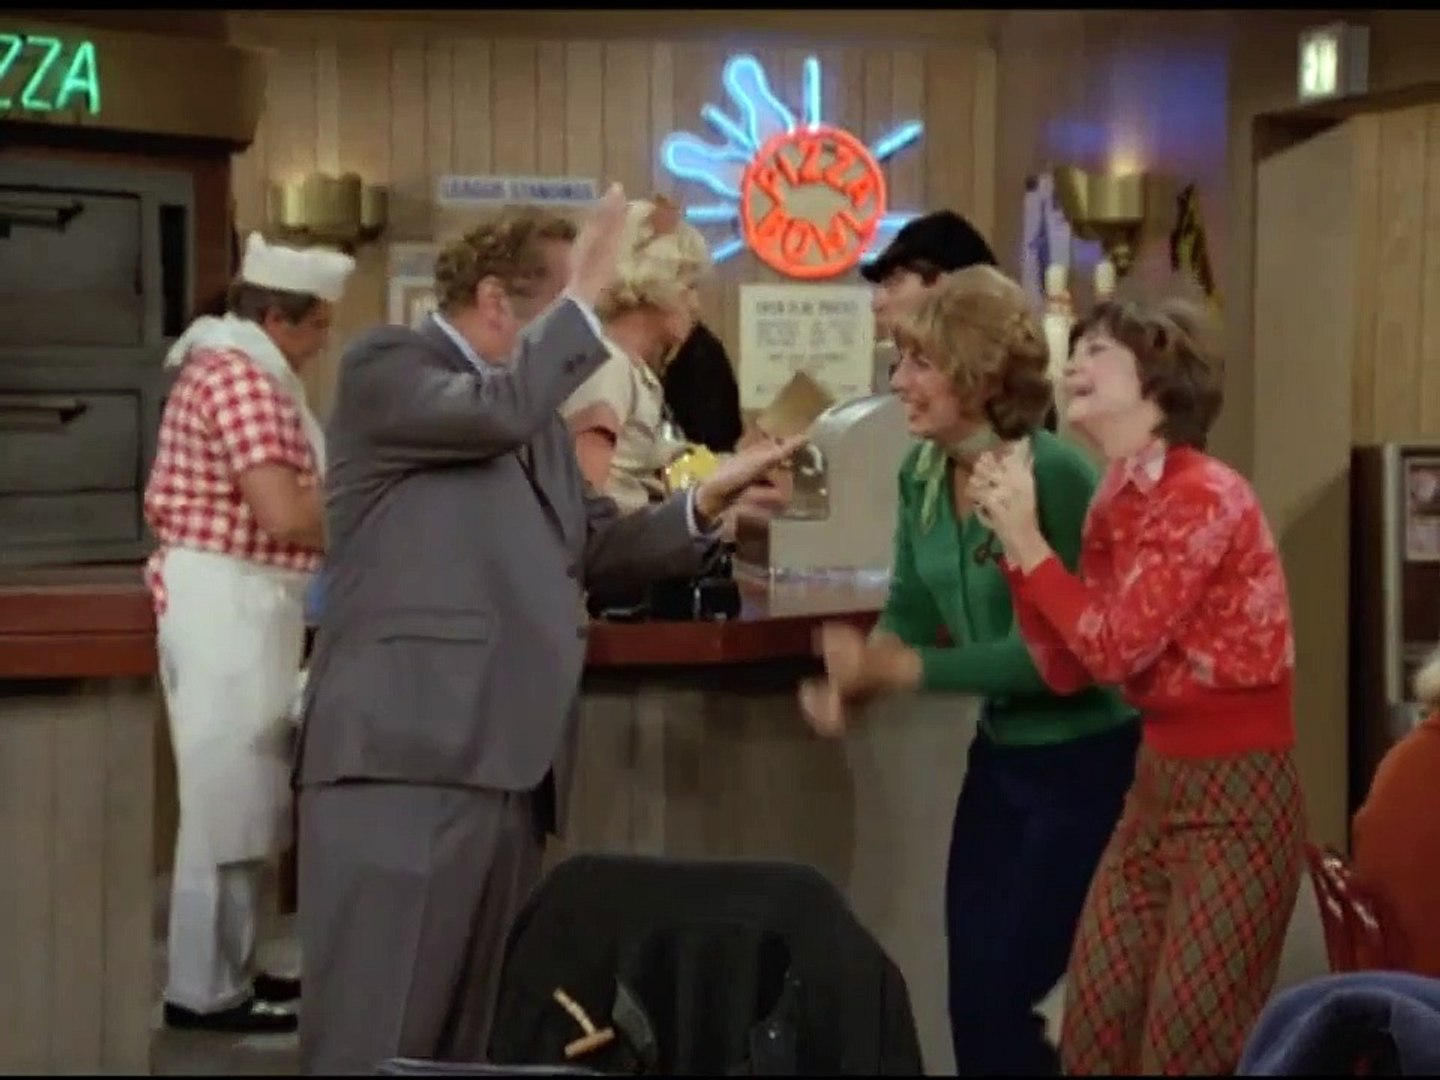 Laverne and Shirley Season 3 Episode 08 Laverne and Shirley Meet Fabian